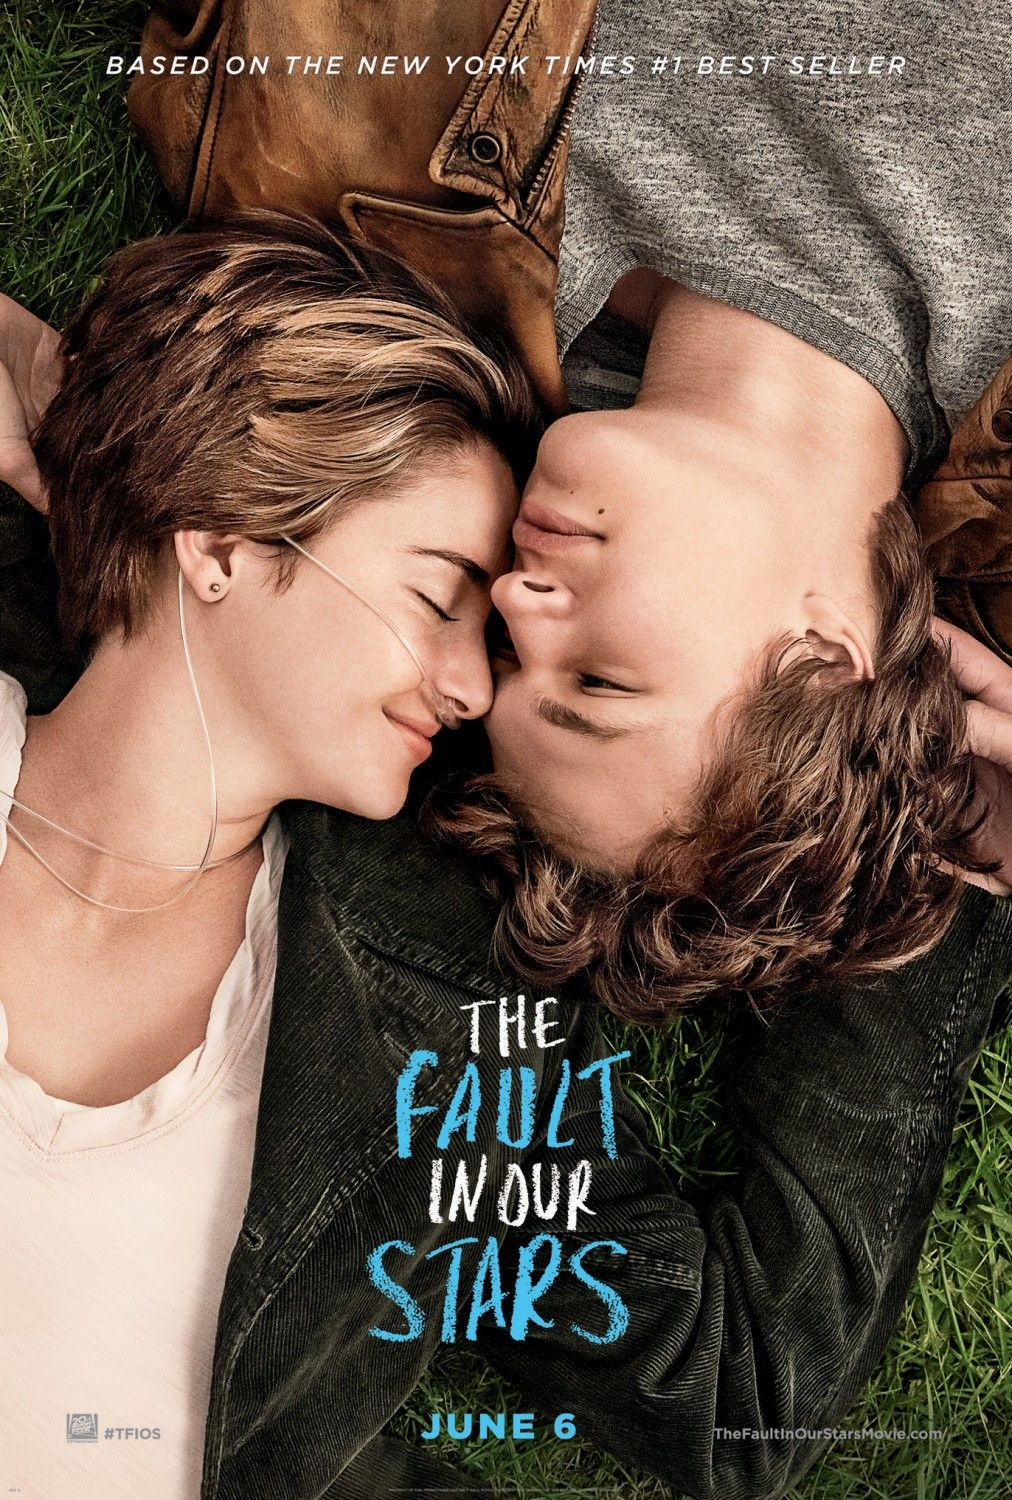 The Fault in Our Stars (2014) (con immagini) | Nuovi film ...